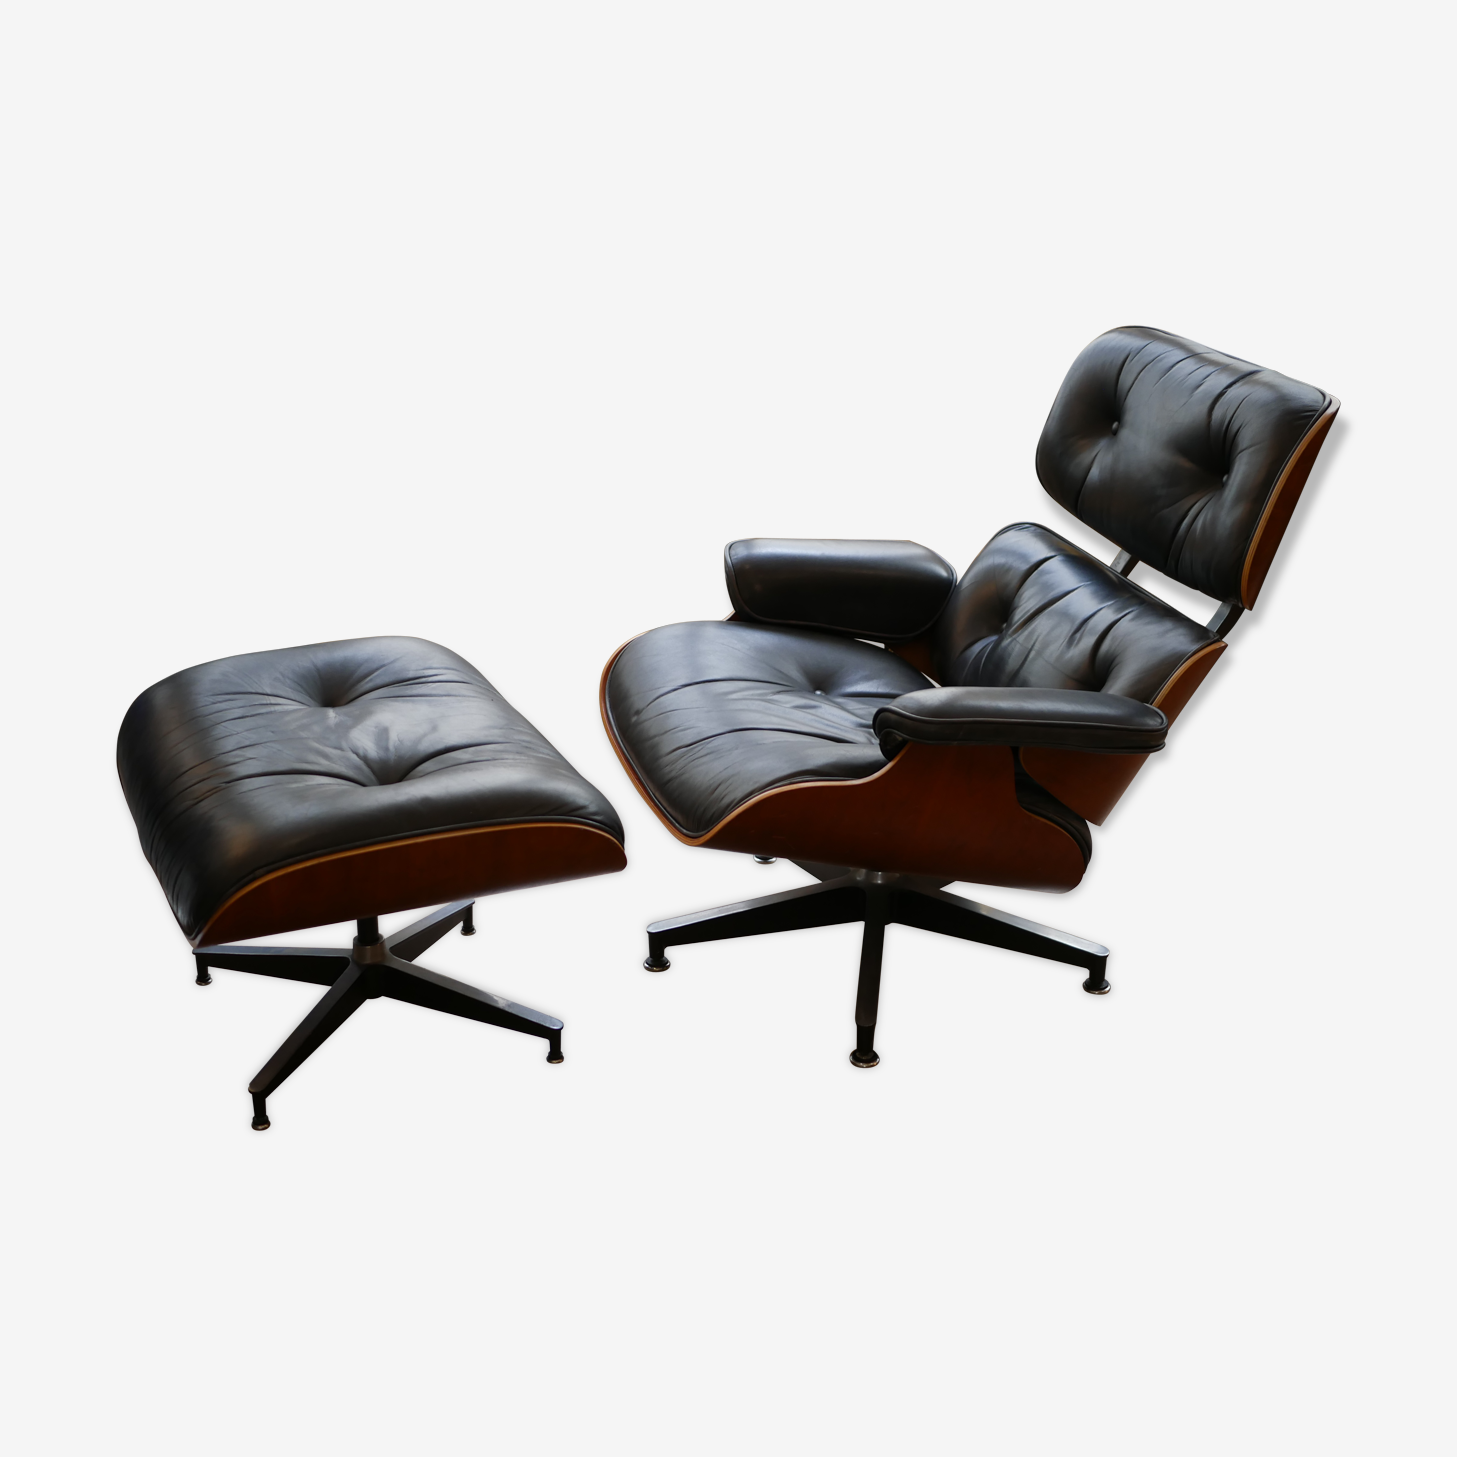 Lounge chair et ottoman par Charles & Ray Eames édition US Herman Miller 1980